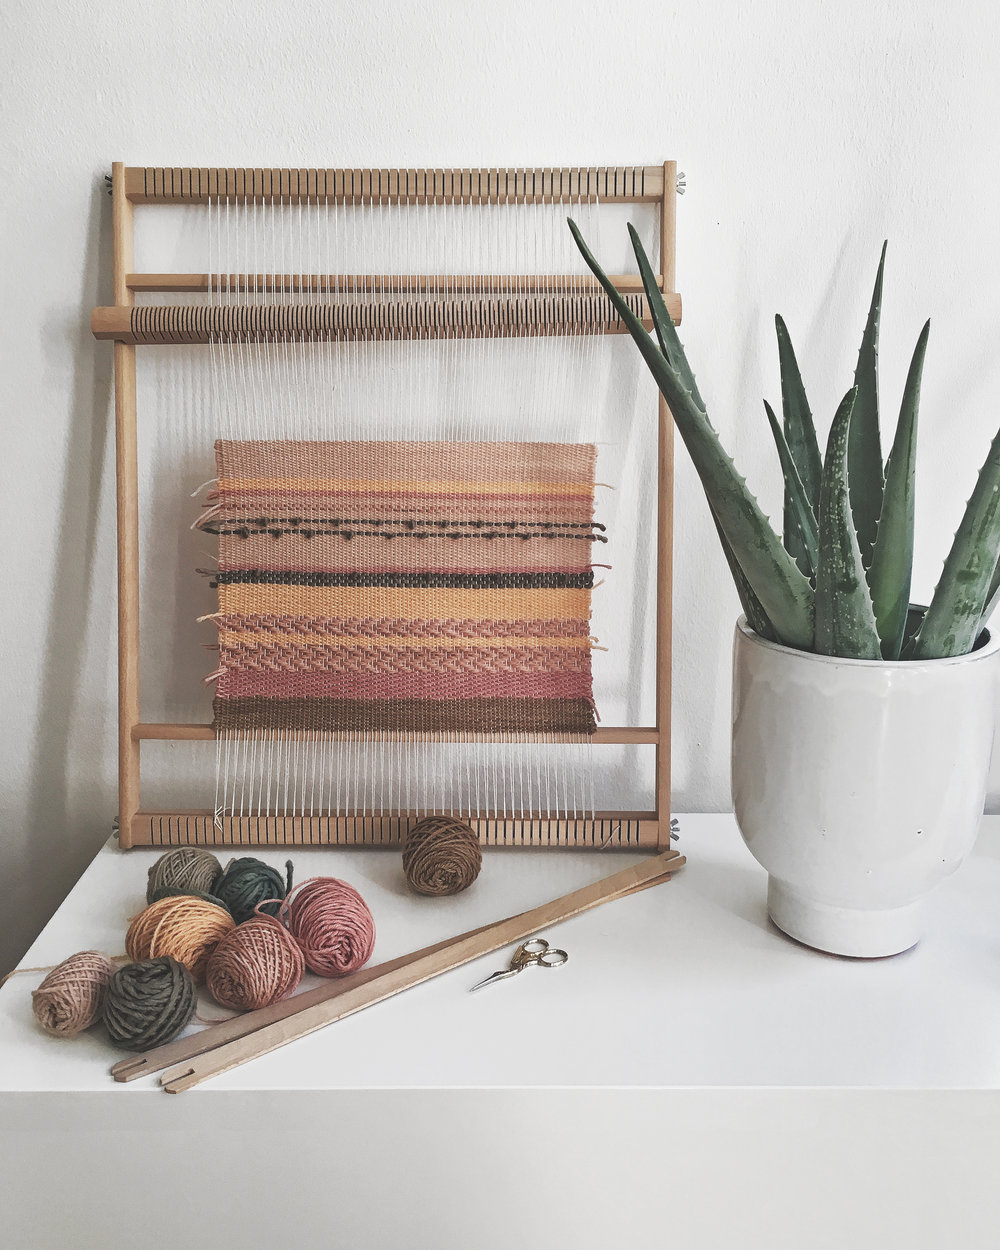 It's possible to weave long pieces on a frame loom